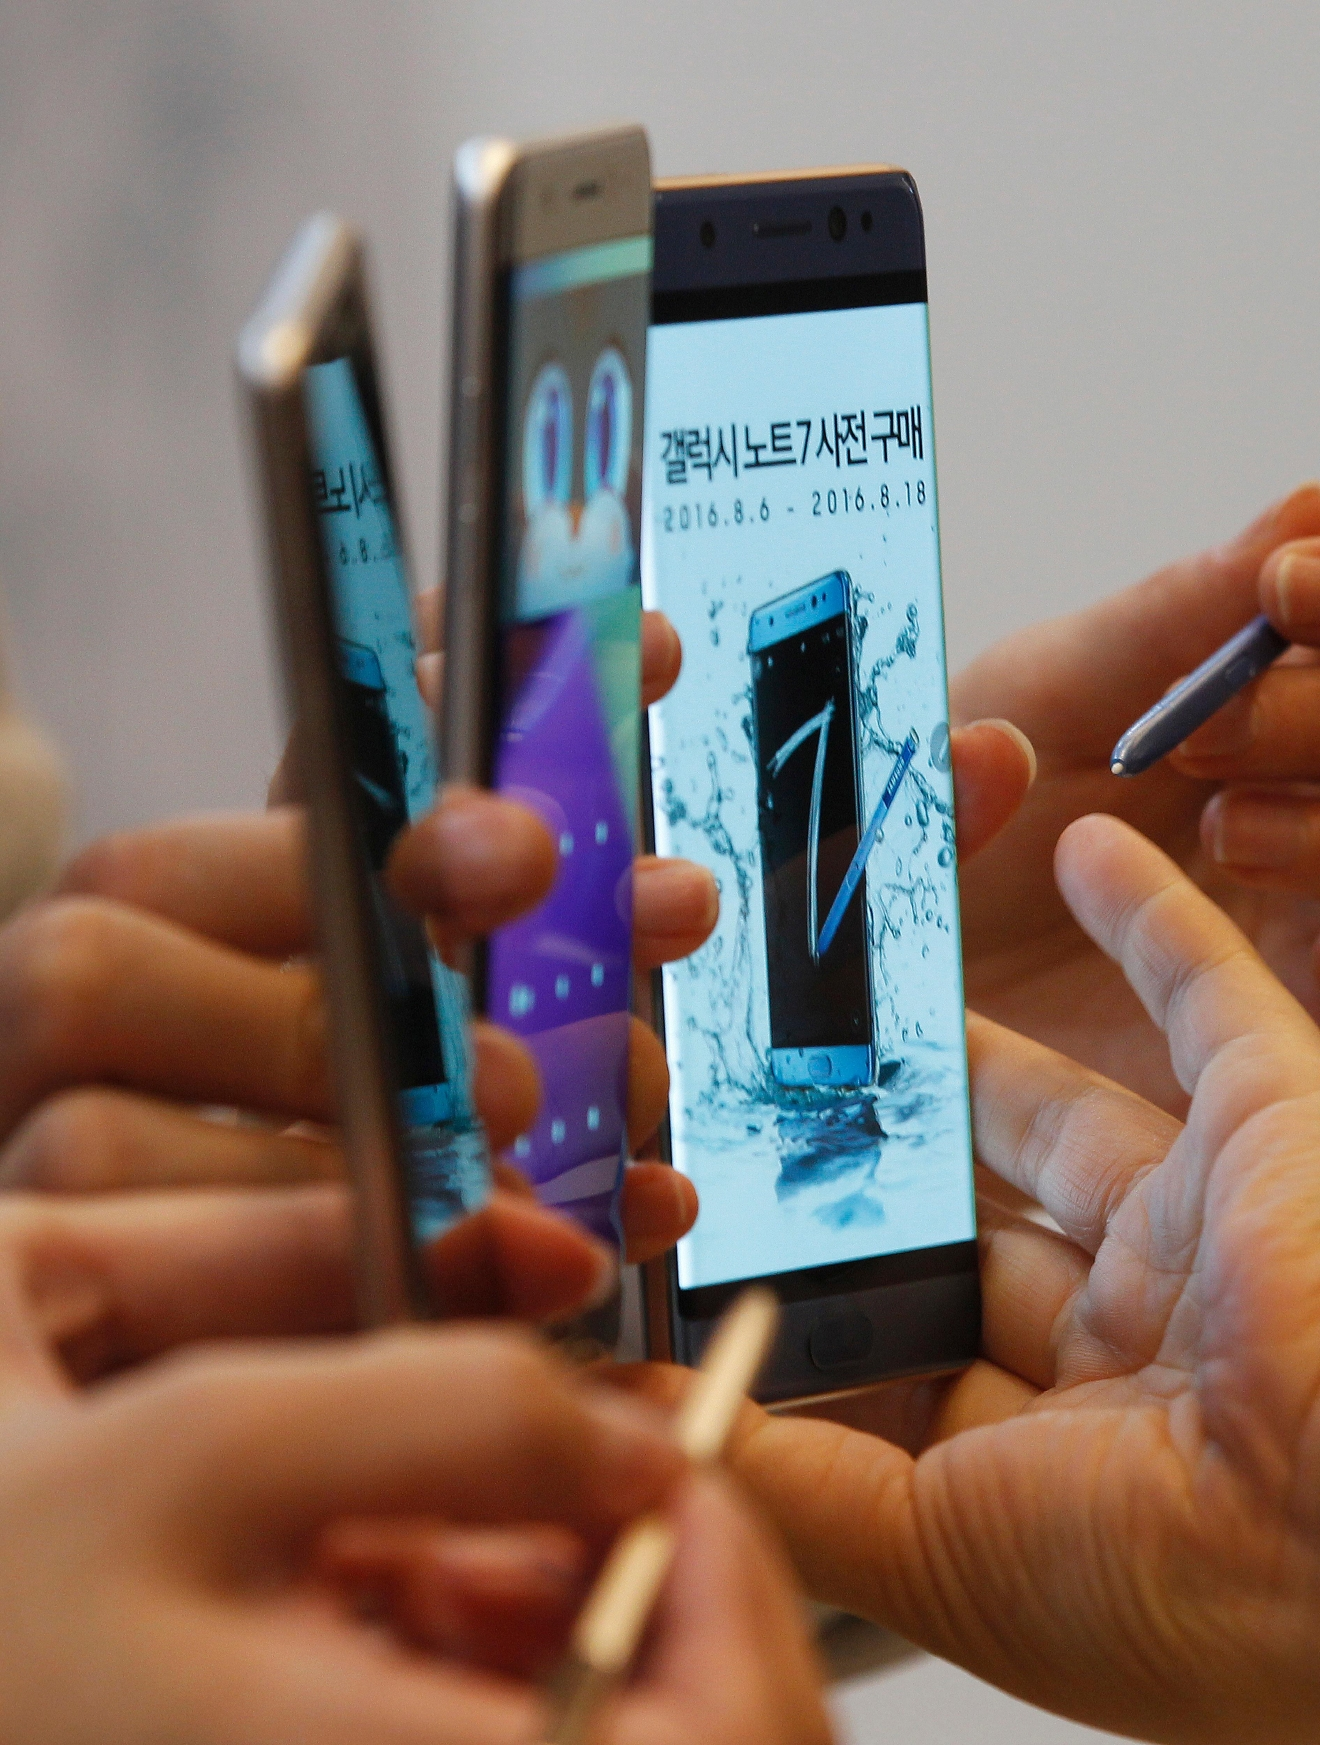 FILE - In this Thursday, Aug. 11, 2016, file photo, models hold Samsung Galaxy Note 7 smartphones during a launch event at the company's headquarters in Seoul, South Korea. In a statement issued Friday, Sept. 9, 2016, the U.S.  Consumer Product Safety Commission said owners of the Galaxy Note 7 smartphones should turn them off and stop using them because of the risk that their batteries can explode. (AP Photo/Ahn Young-joon, File)